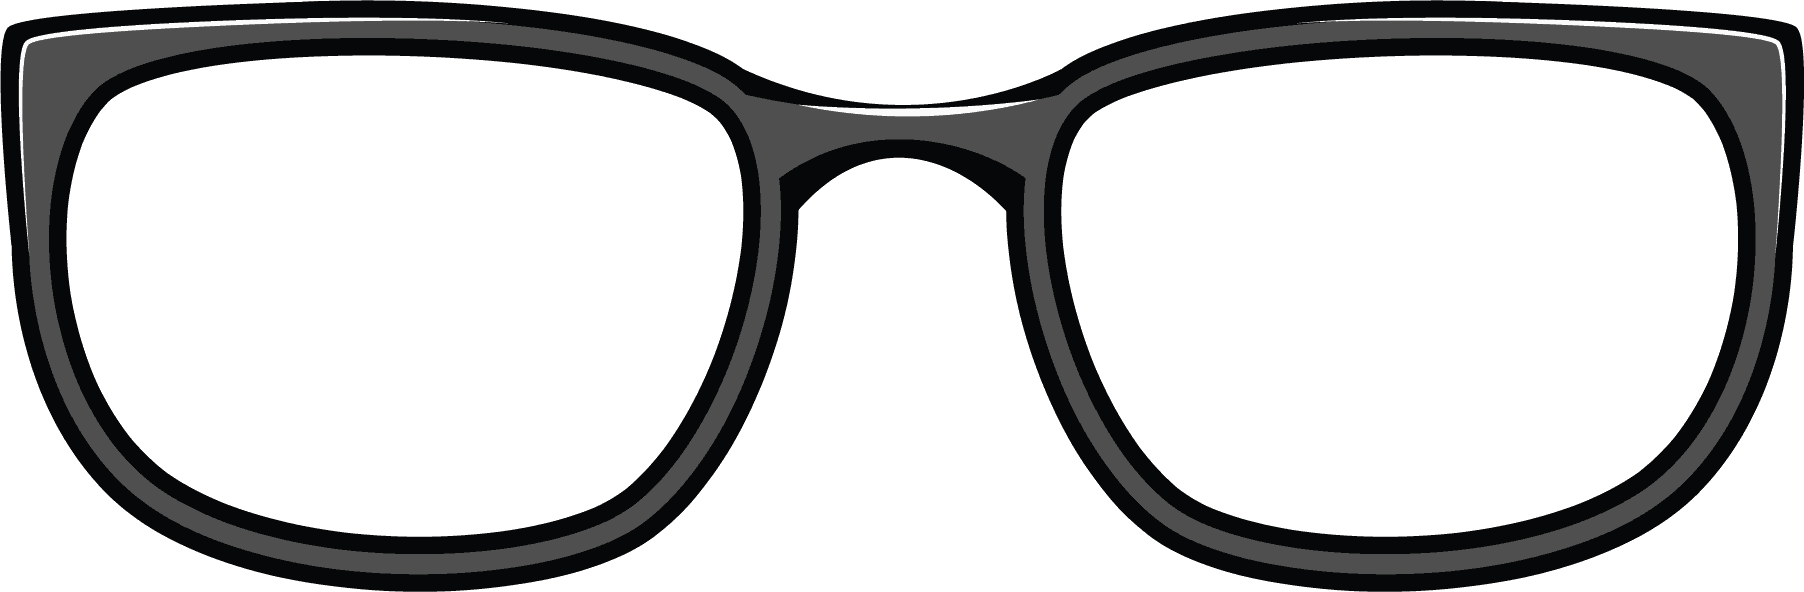 Glasses Frame Black And White : Clipart Eyeglasses Png - ClipArt Best